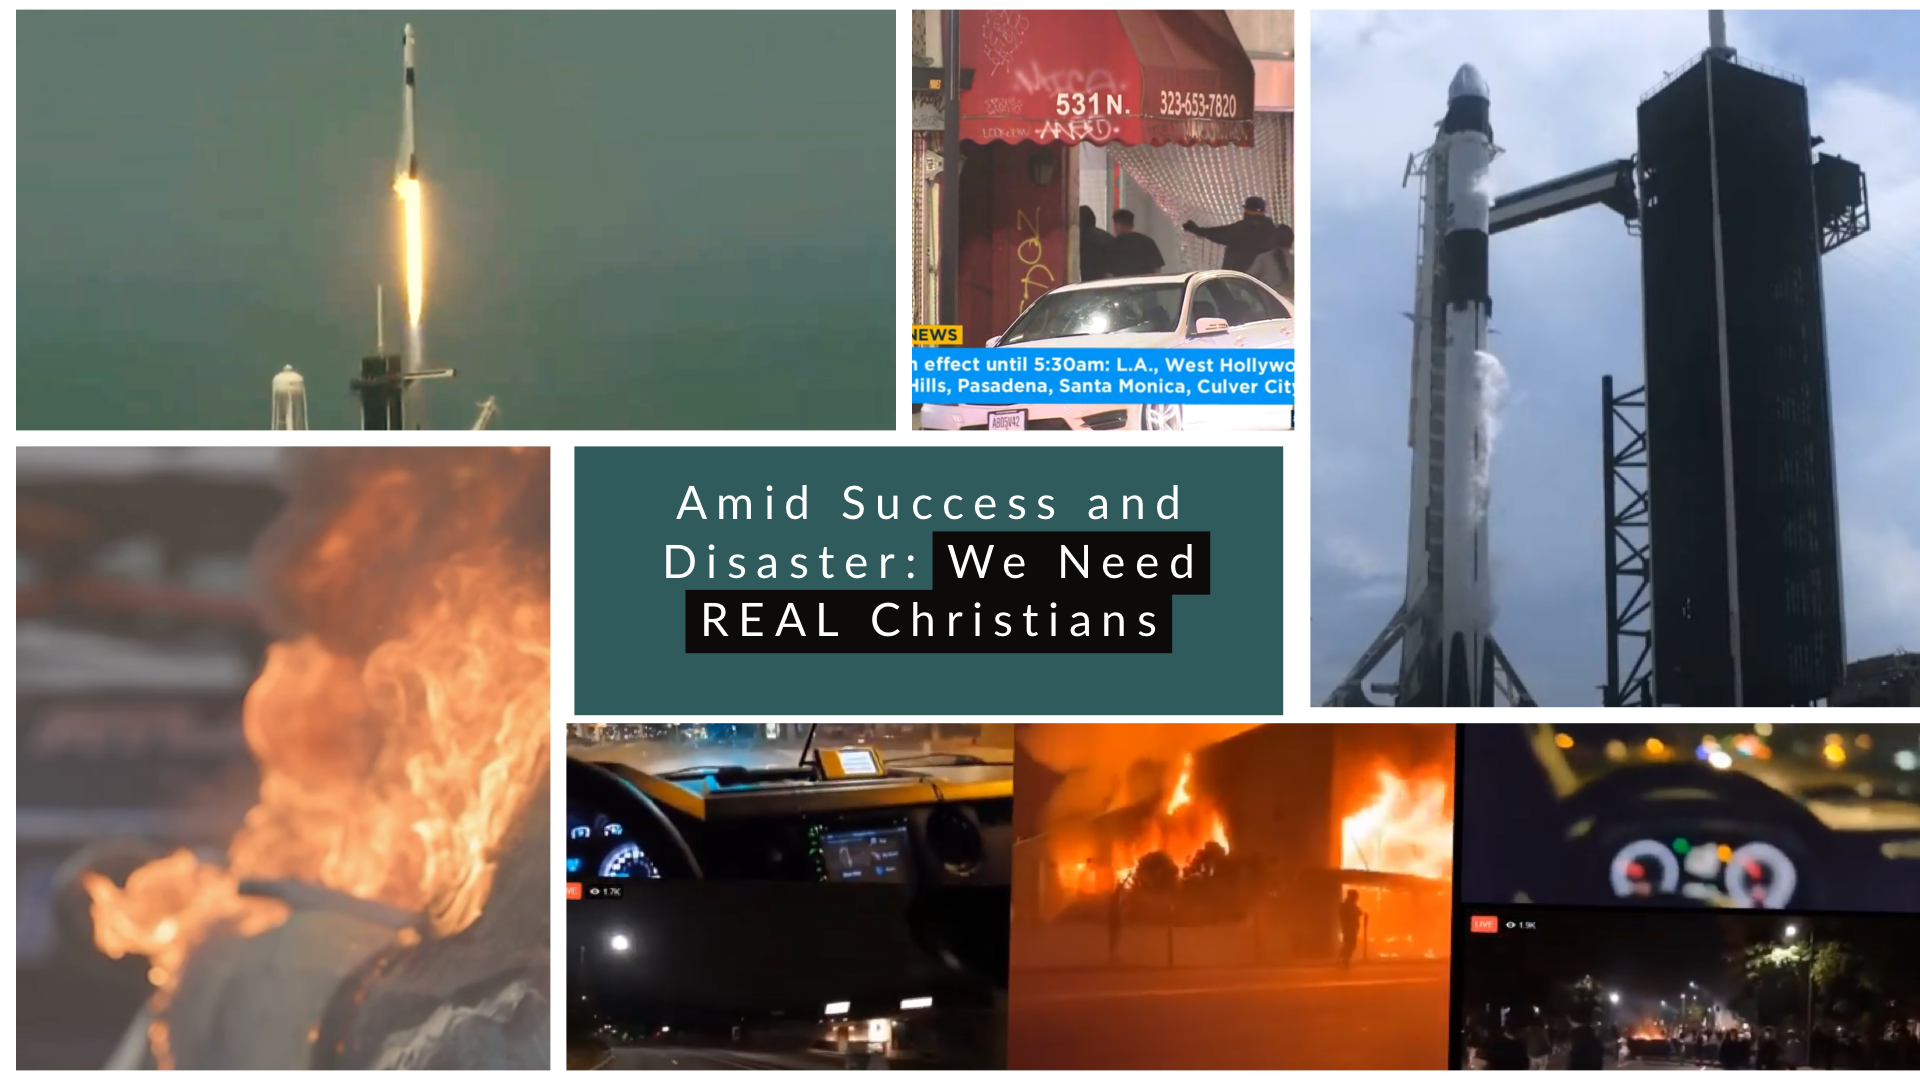 """Featured image for """"Amid Success and Disaster, We Need REAL CHRISTIANS"""""""